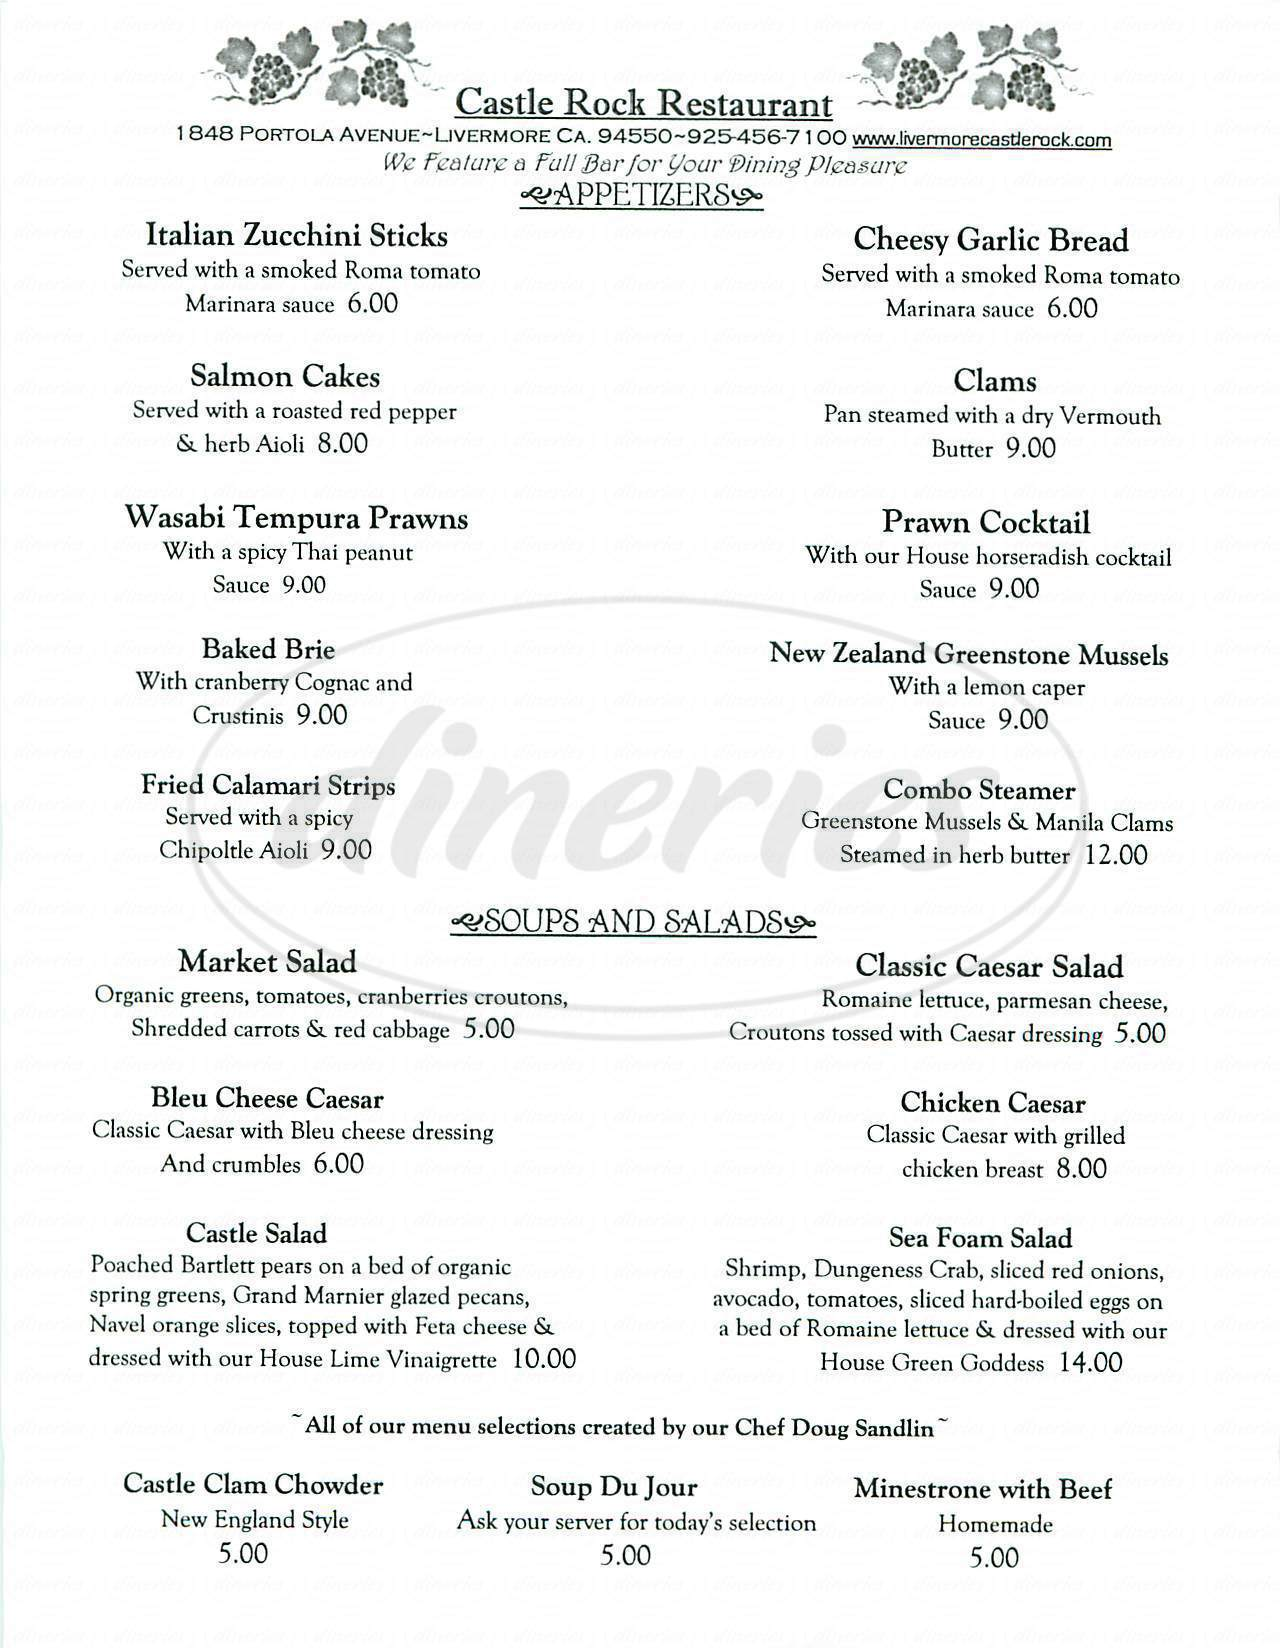 menu for Castle Rock Restaurant